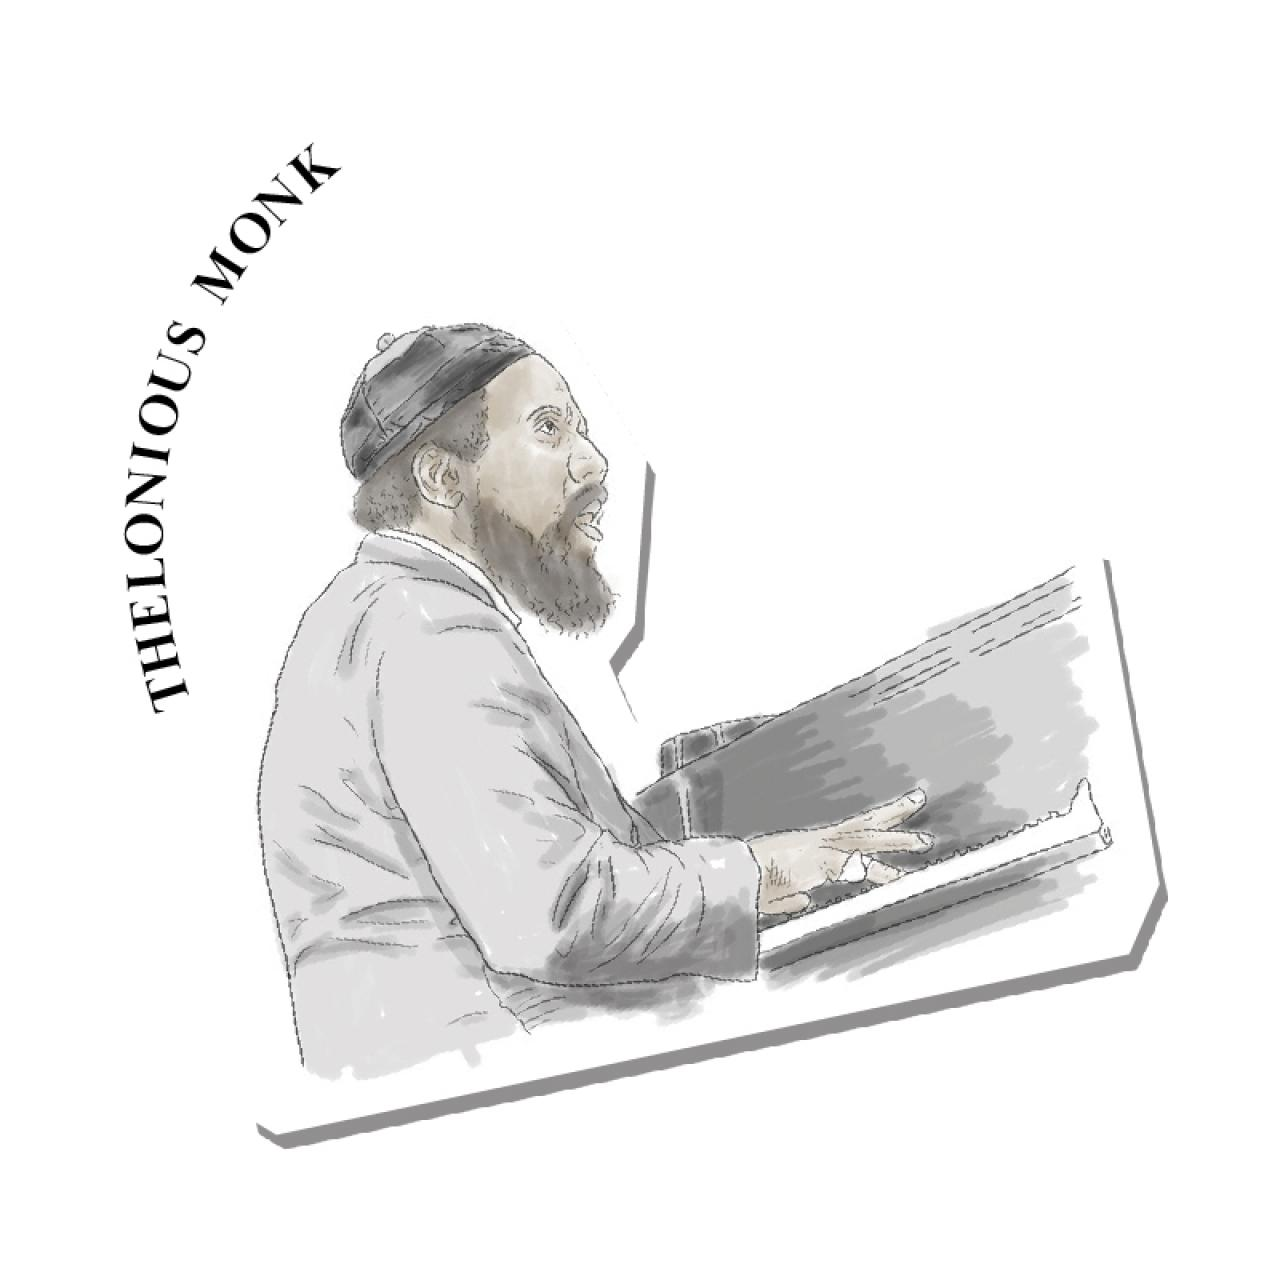 An illustration of Thelonious Monk